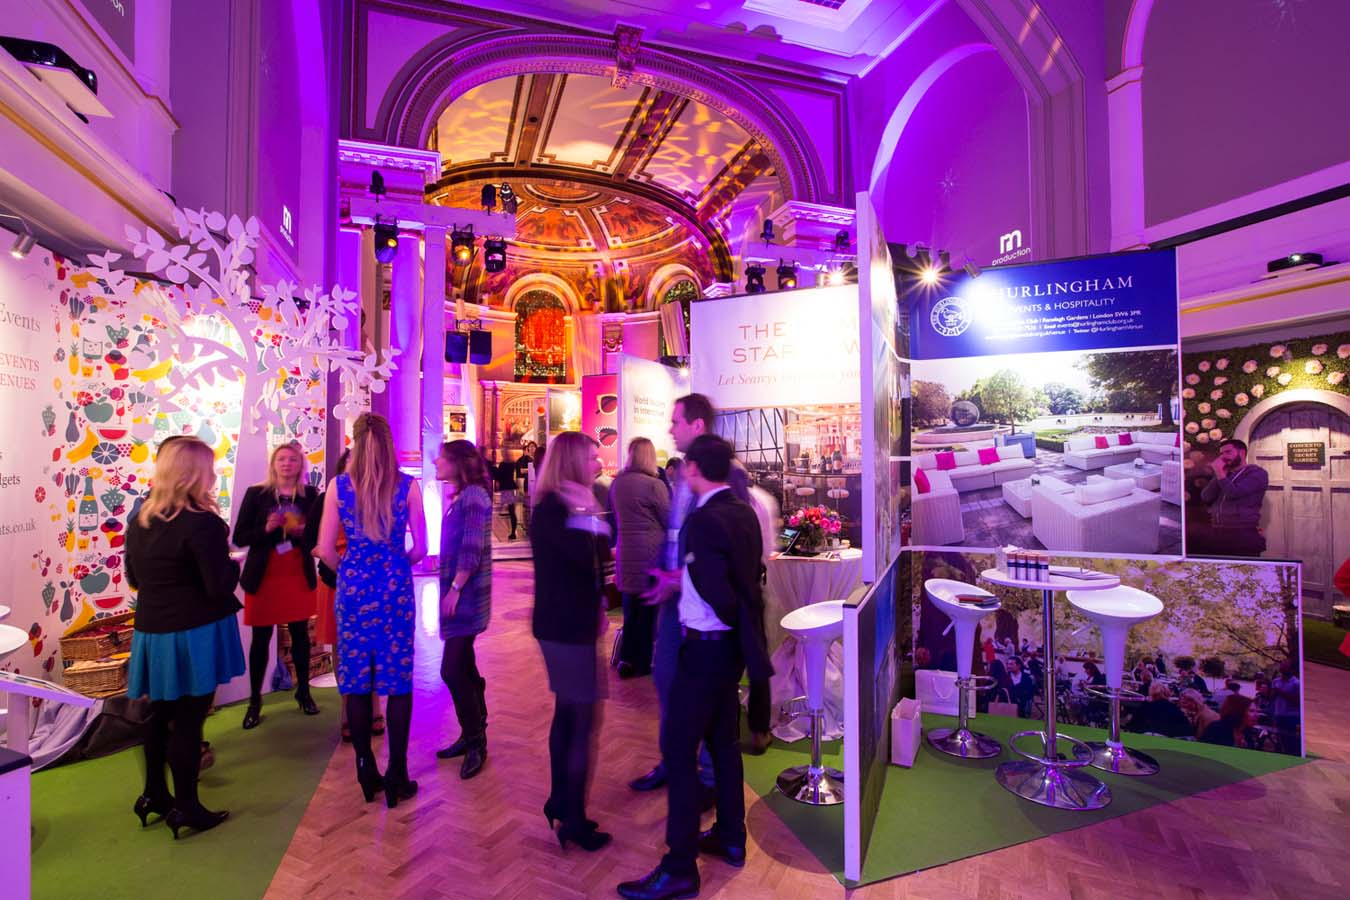 events in london Top August Events in London! PORT Marylebone 150131 LondonSummerEventShow 06